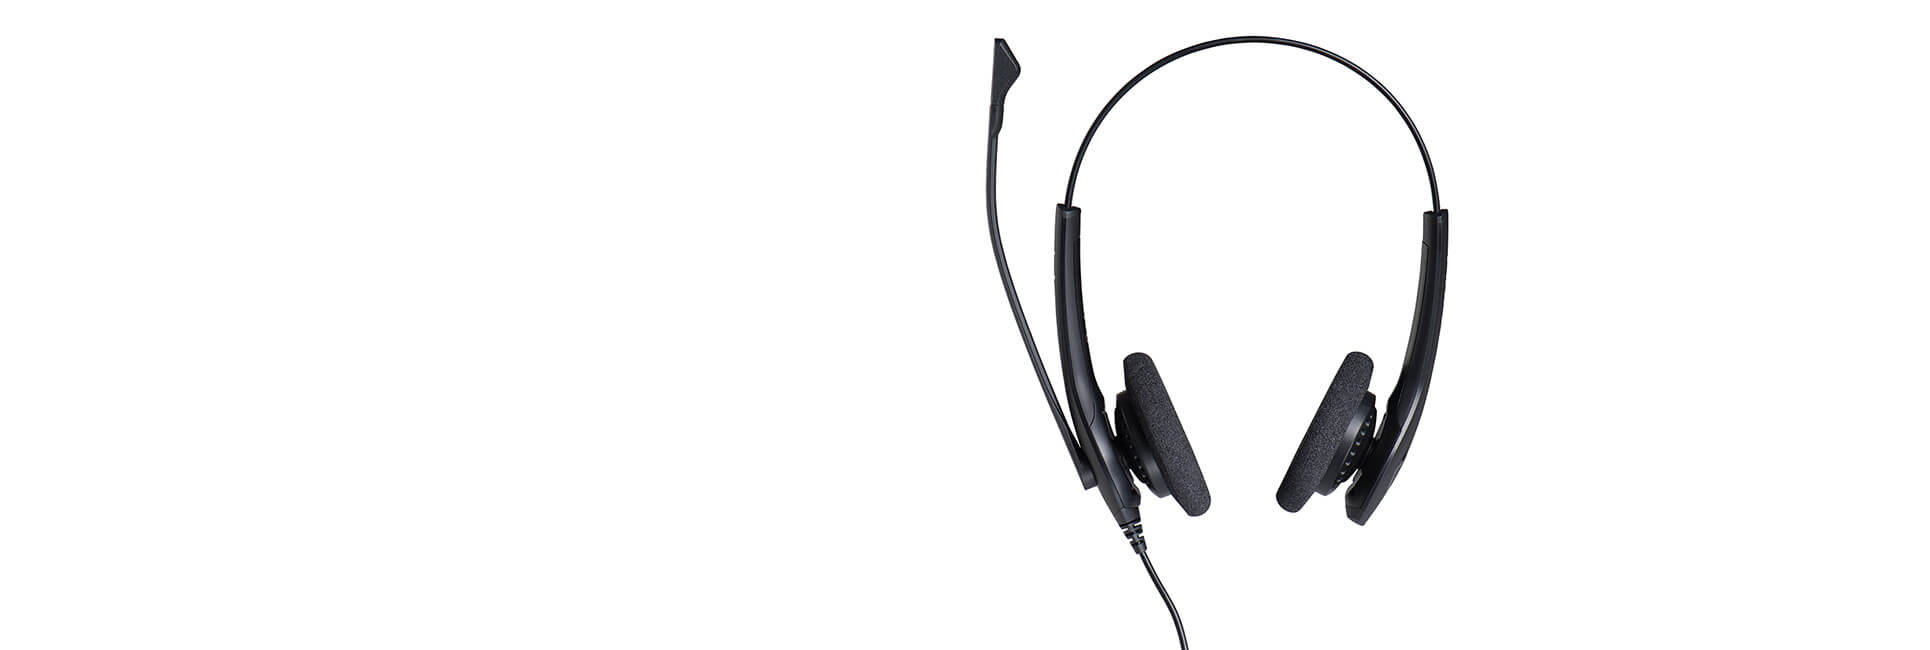 http://www.jabra.pl/-/media/Images/Products/Jabra%20BIZ%201500/KSP1.jpg